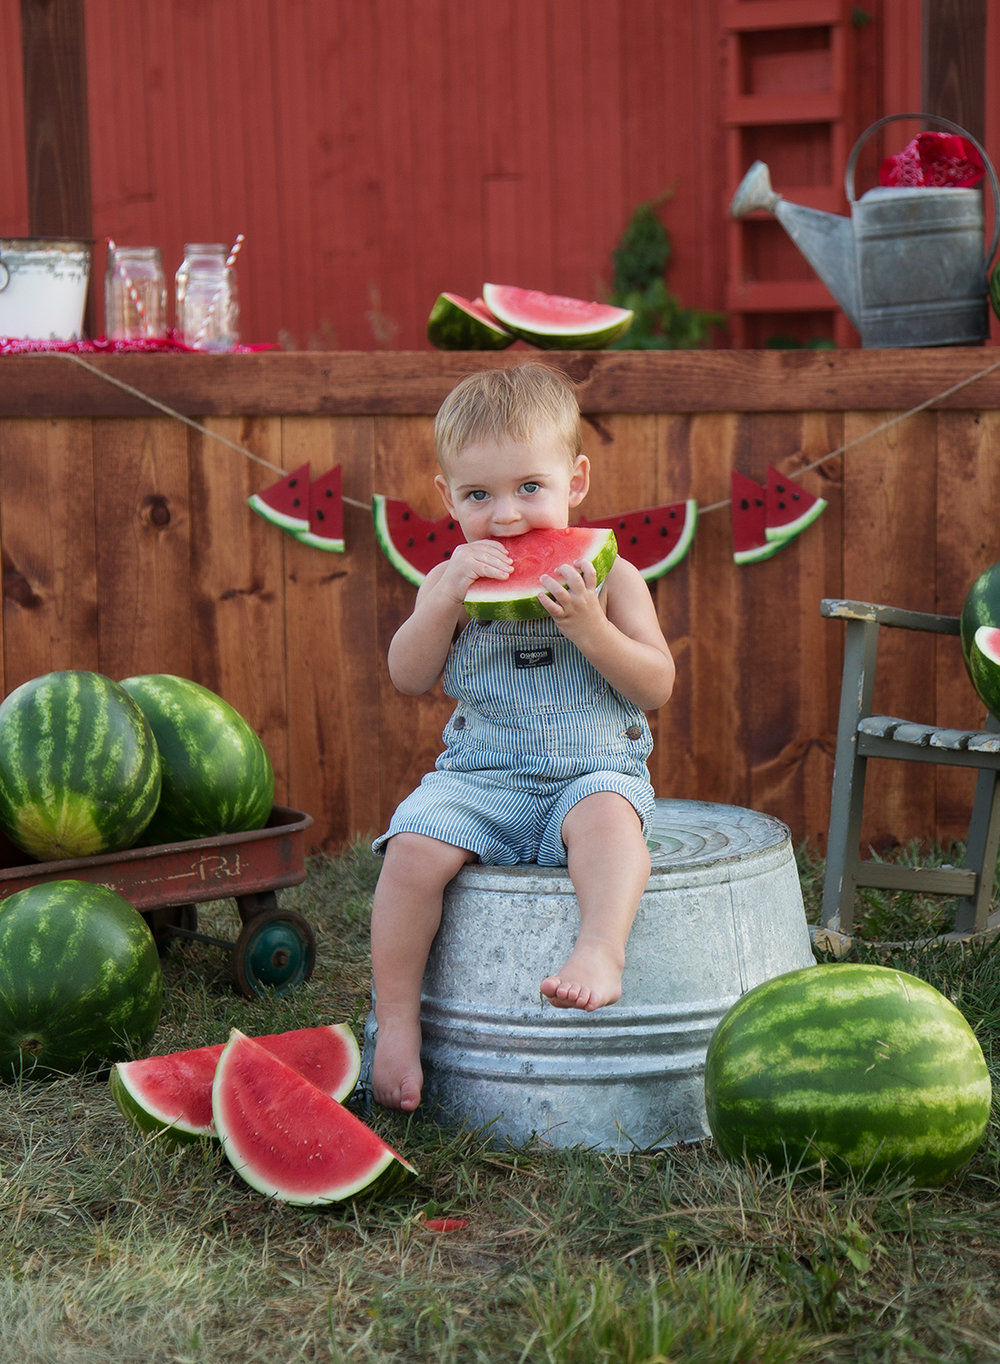 baby boy eating watermelon